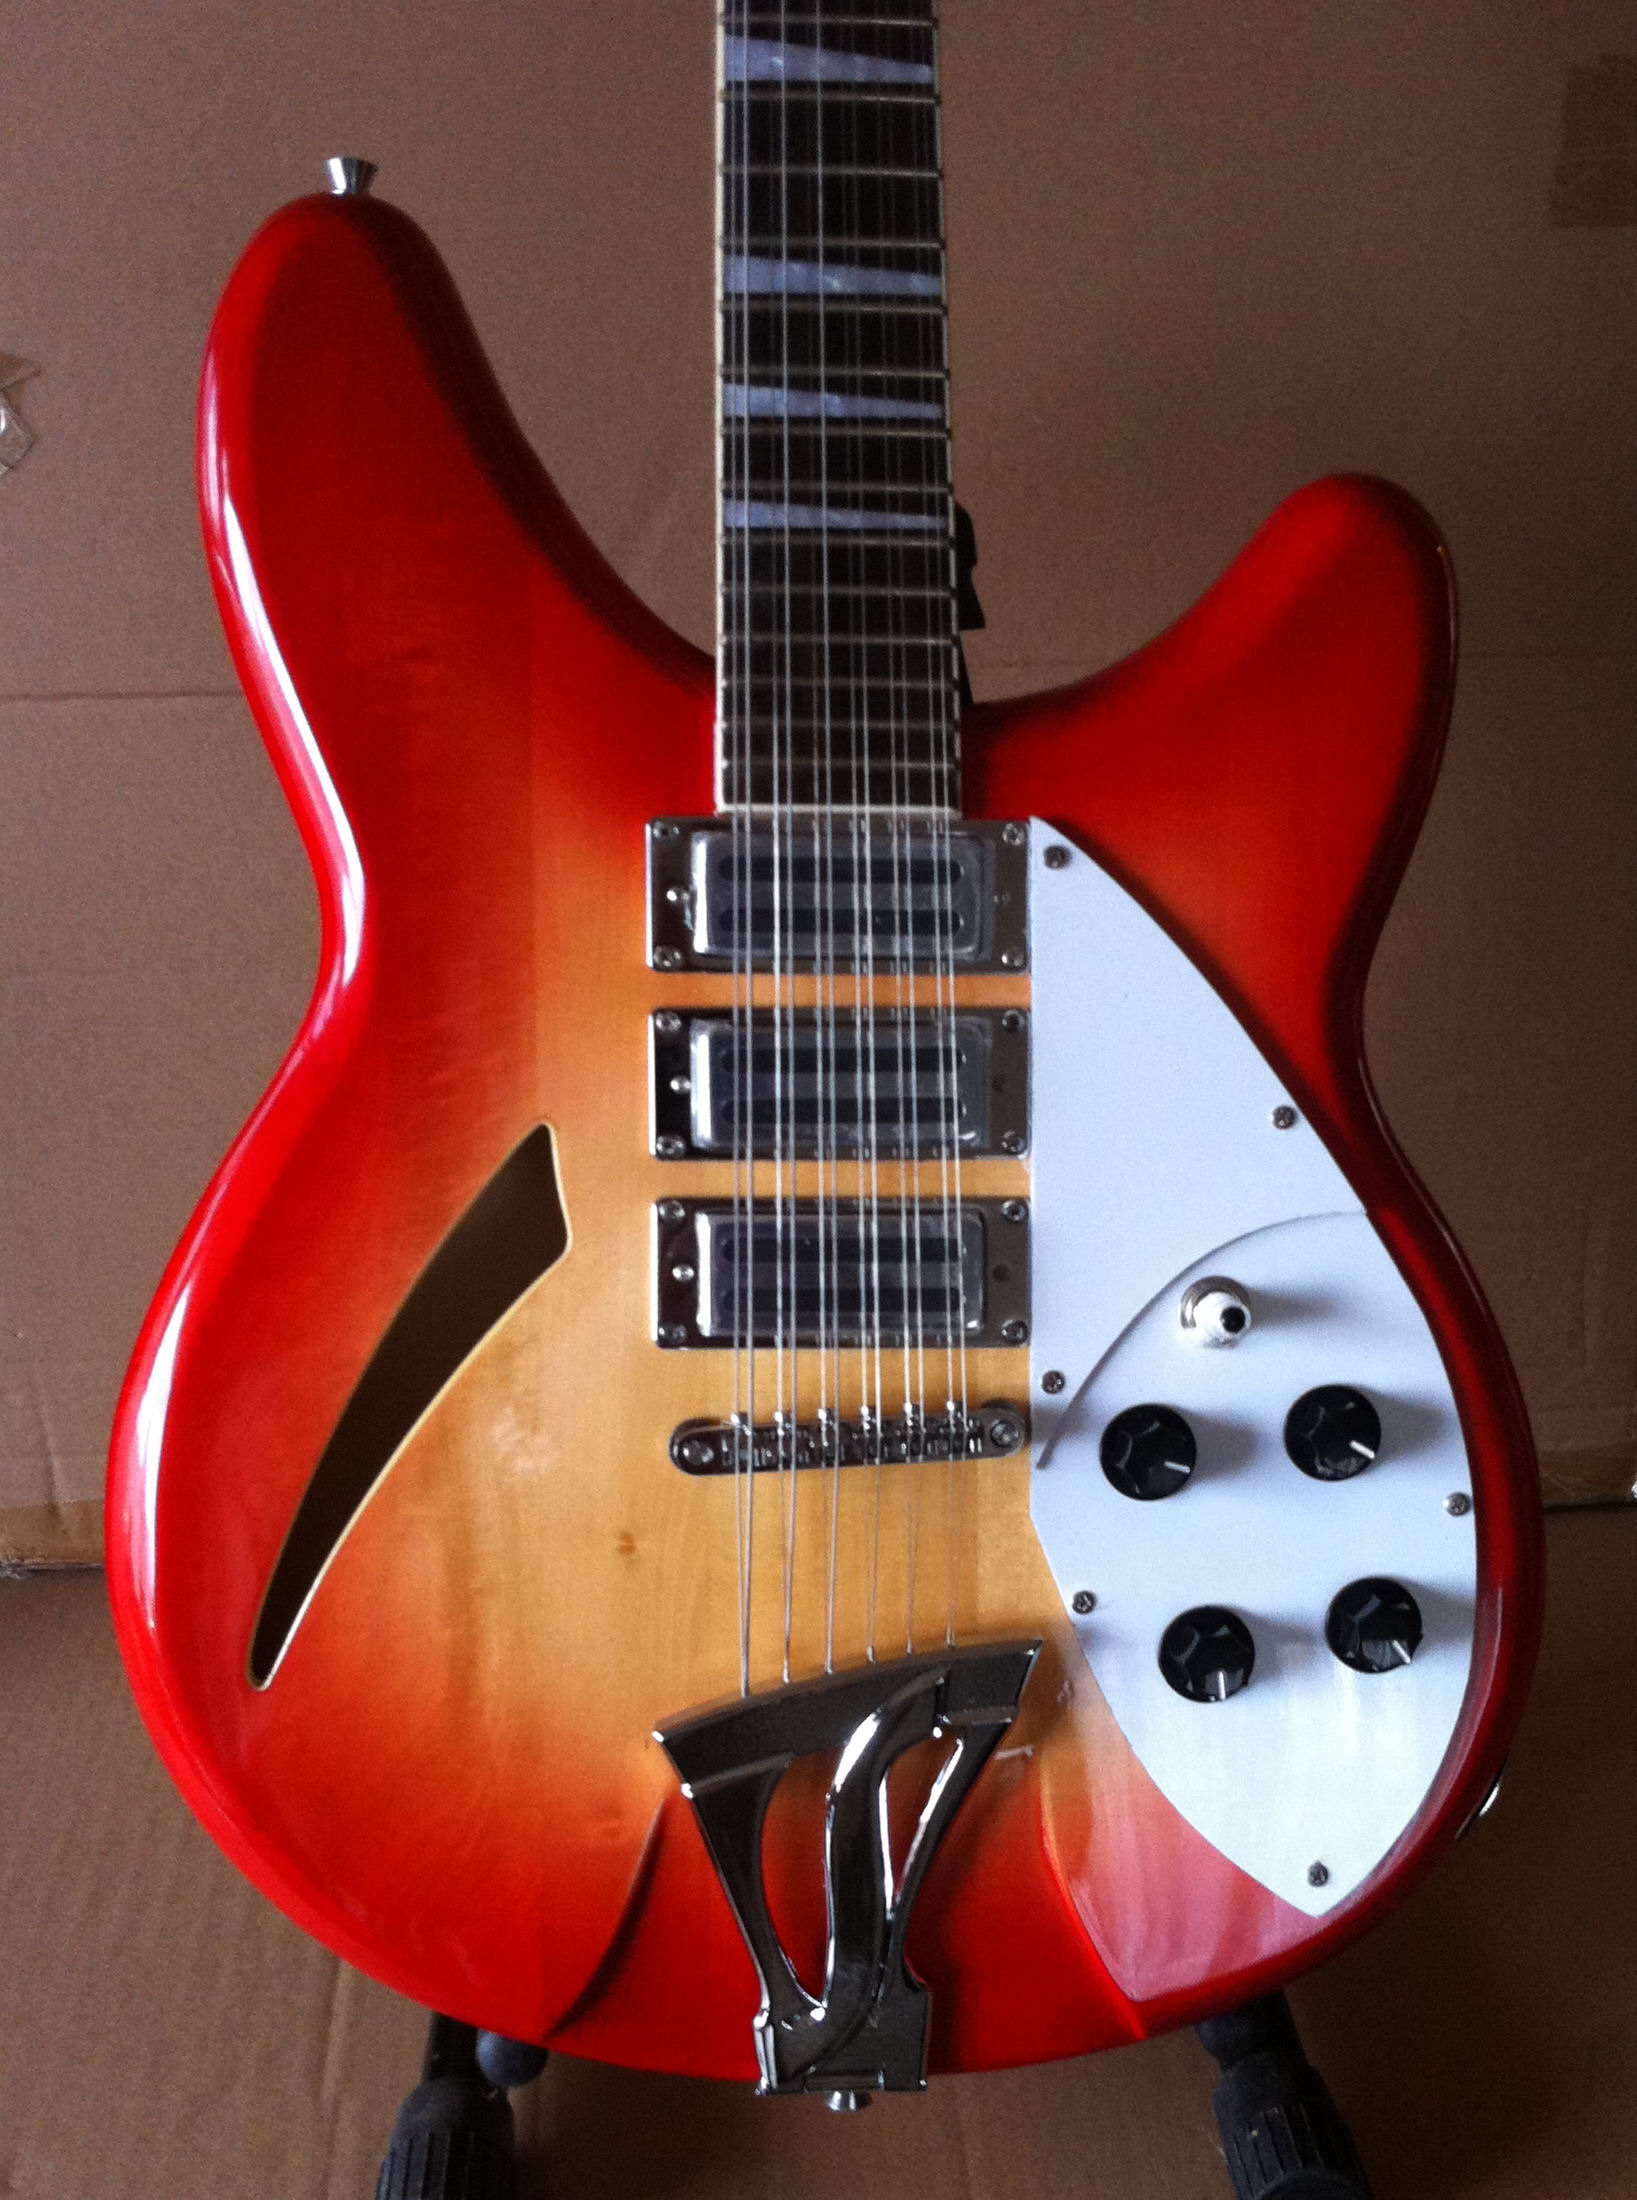 Fishbone FGH-CHERRY-12- String Electric Semi-Solid Body